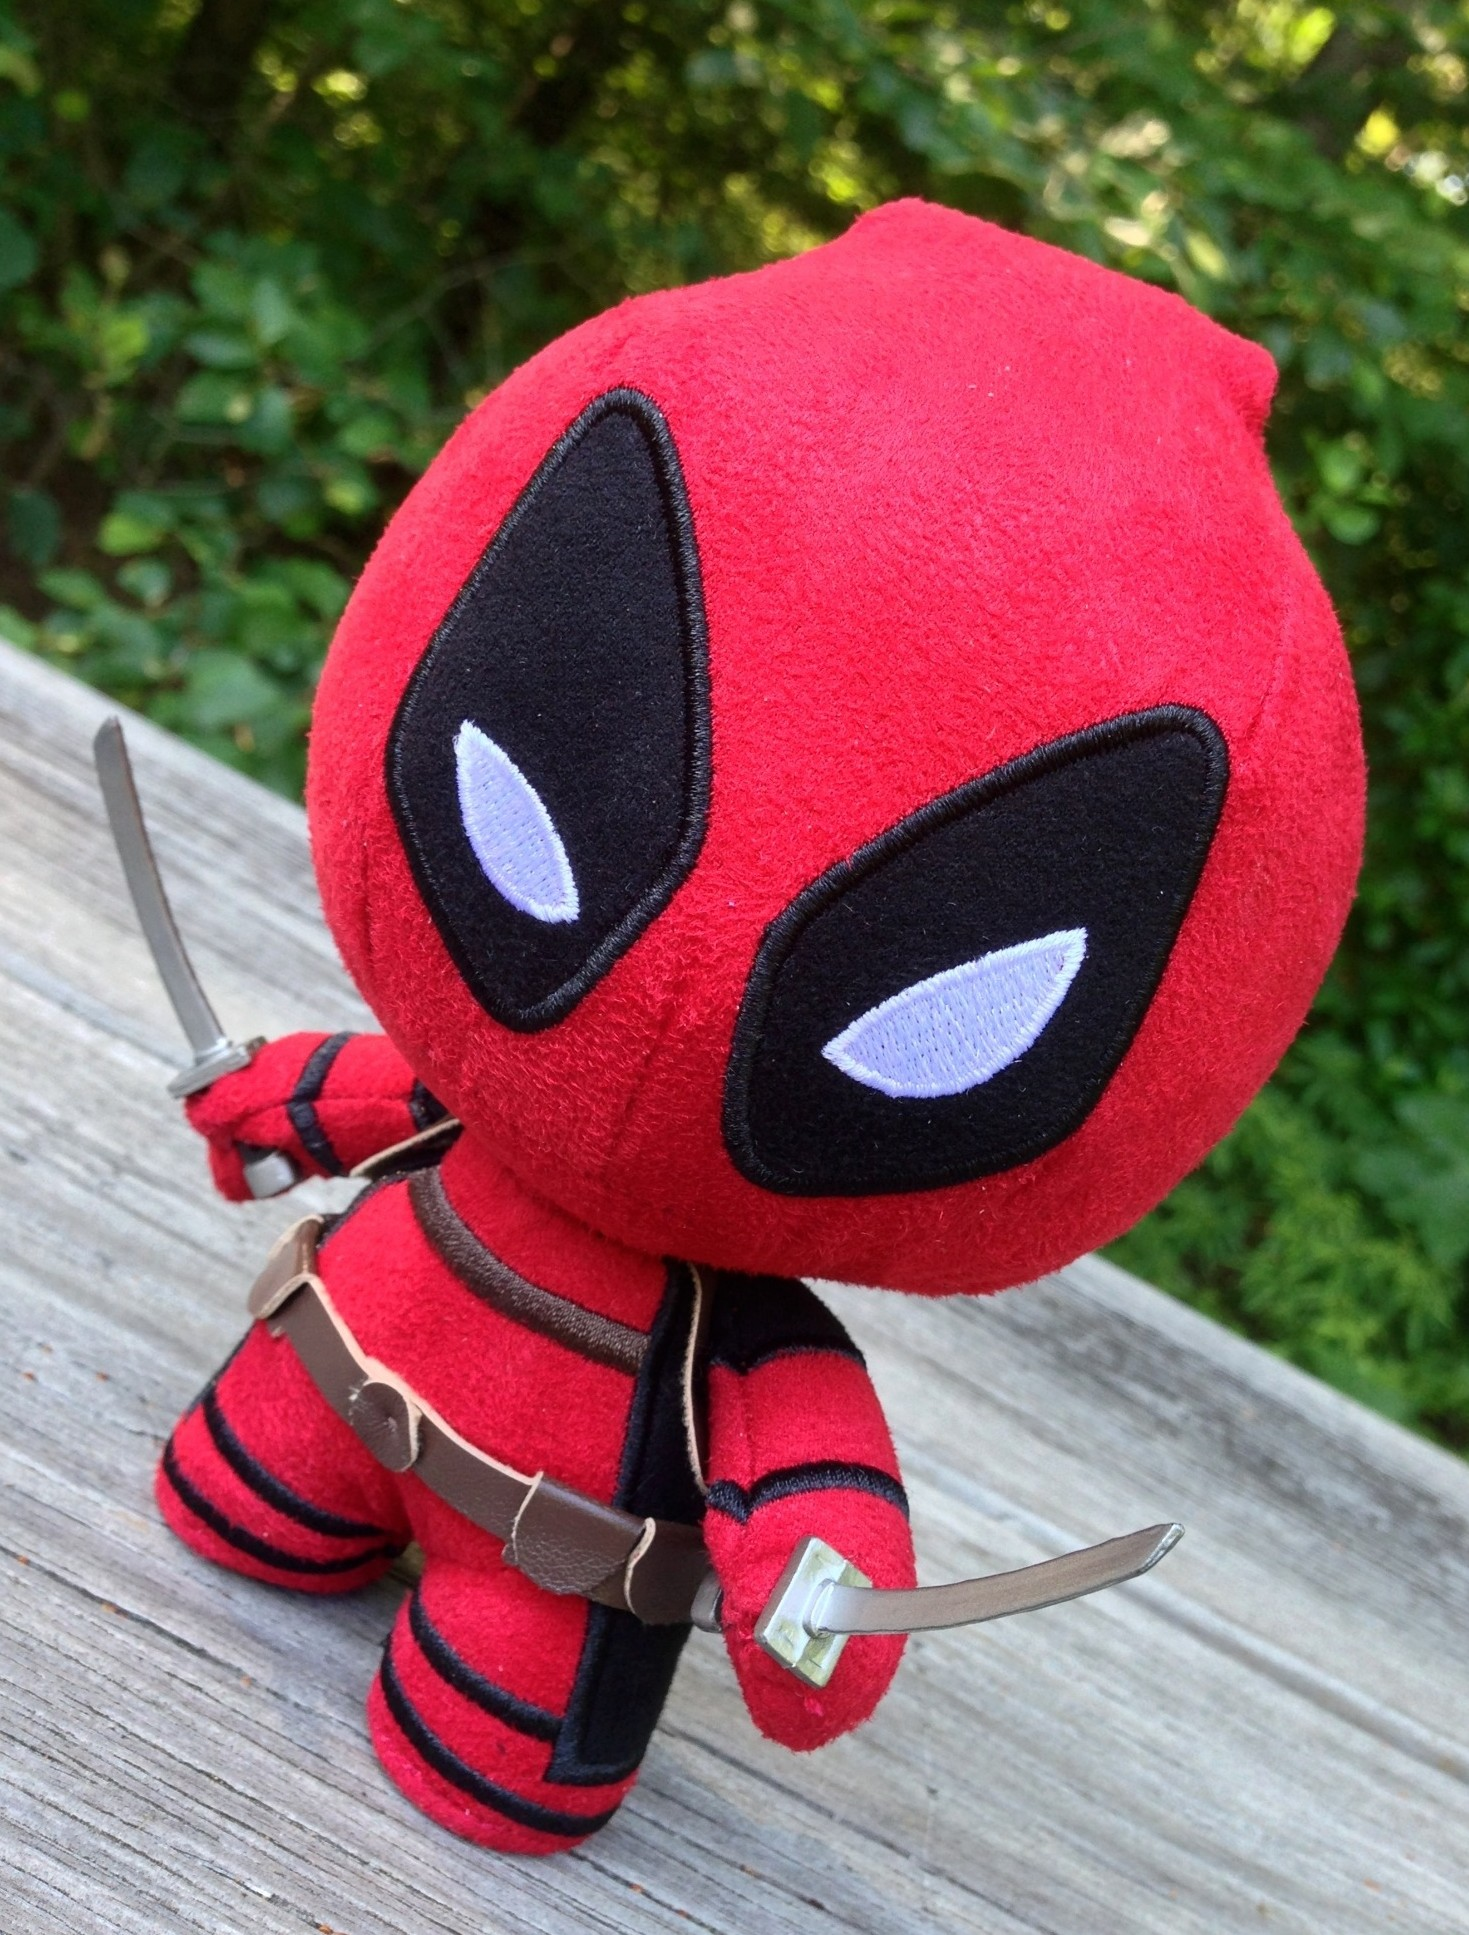 Marvel Funko Fabrikations Deadpool Review   Photos - Marvel Toy News 88ea4aaf47a